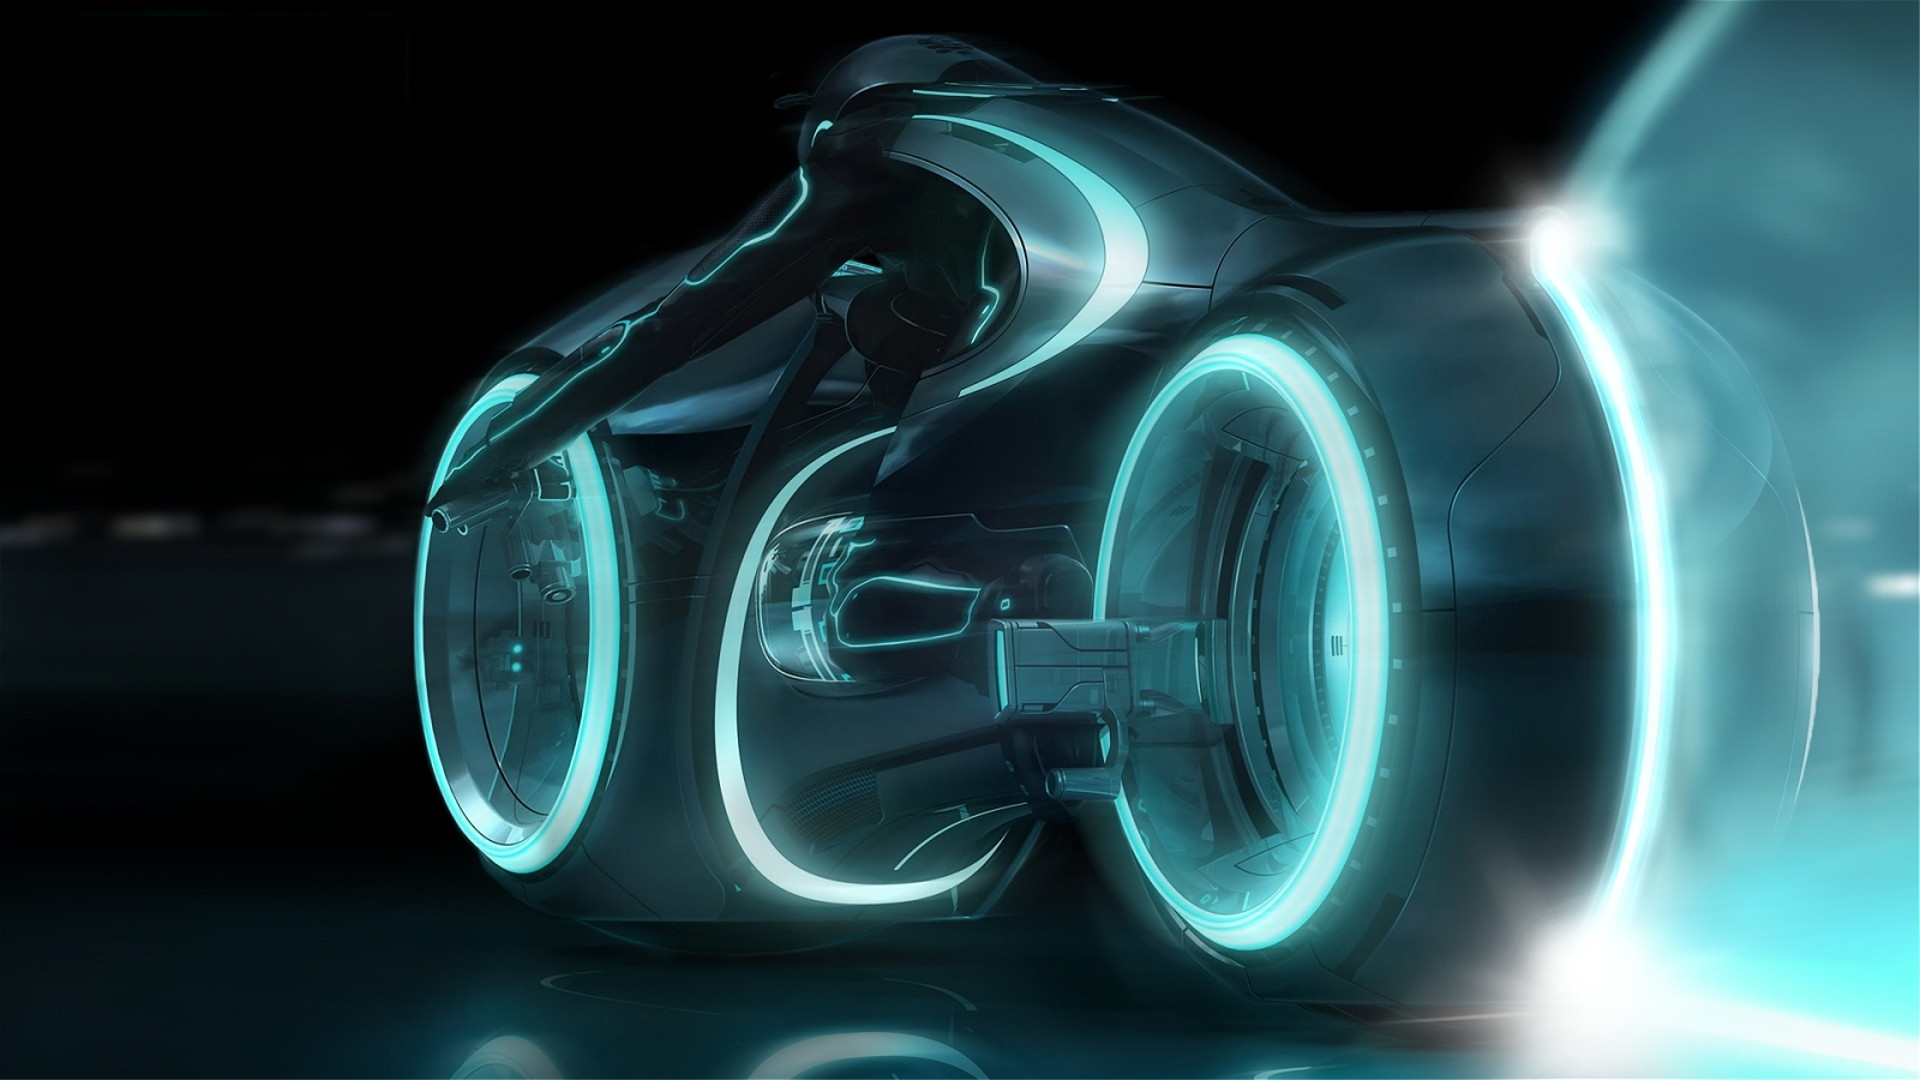 tron legacy wallpaper bike blue